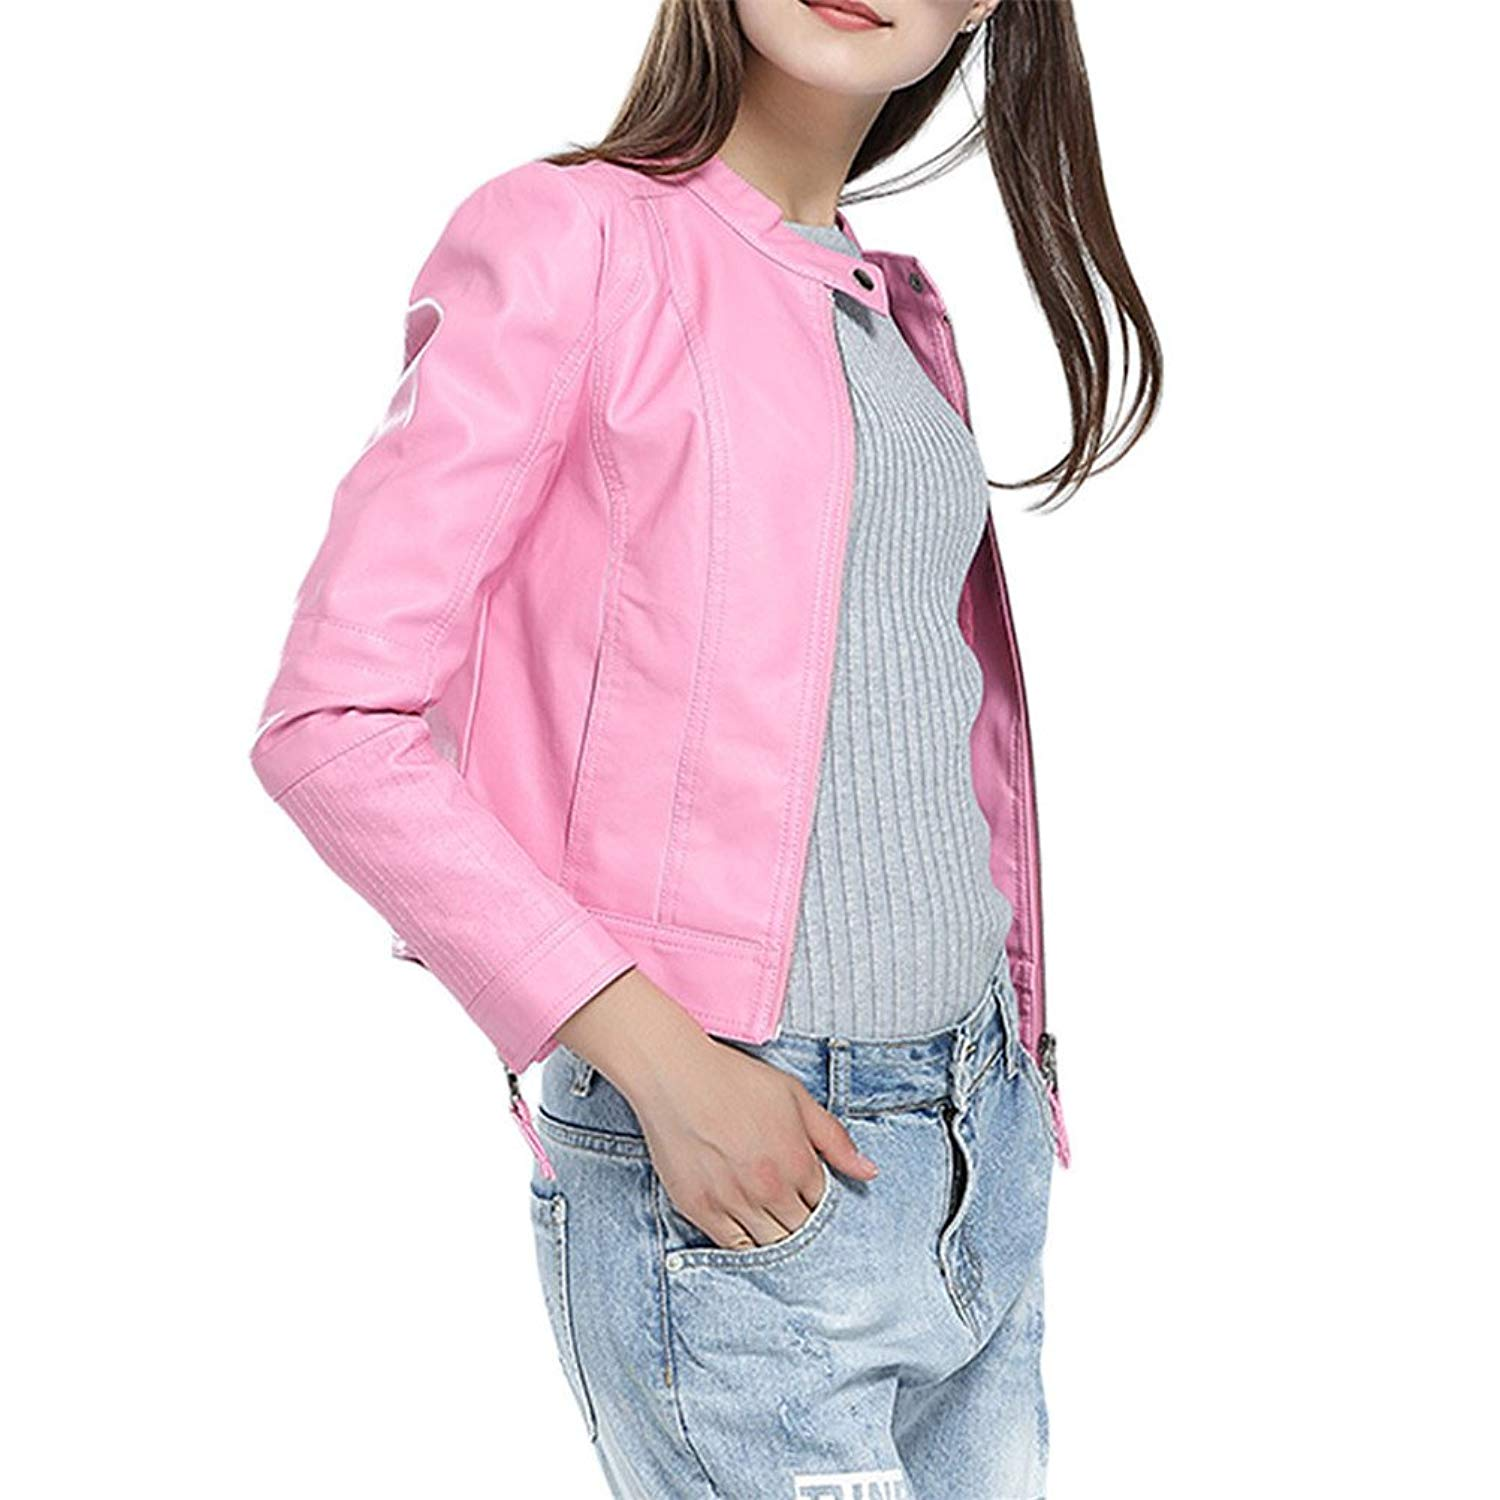 3bb89cac186 Get Quotations · Women s Fashion Faux Leather Coat Pink Jacket Slim PU  Leather Short Bomber Plus Size Jacket Blazer